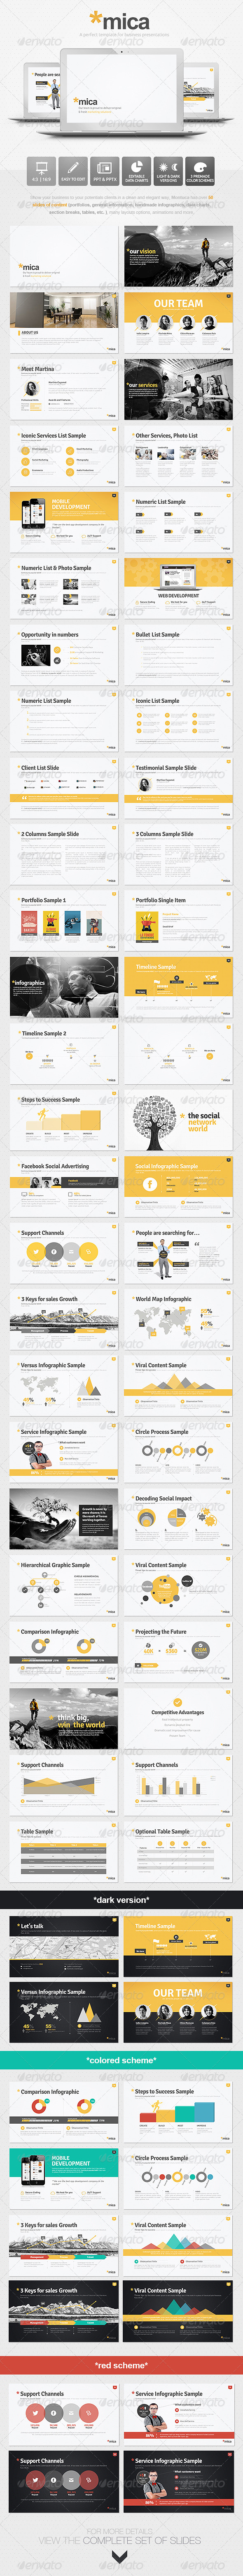 Mica Powerpoint Presentation Template